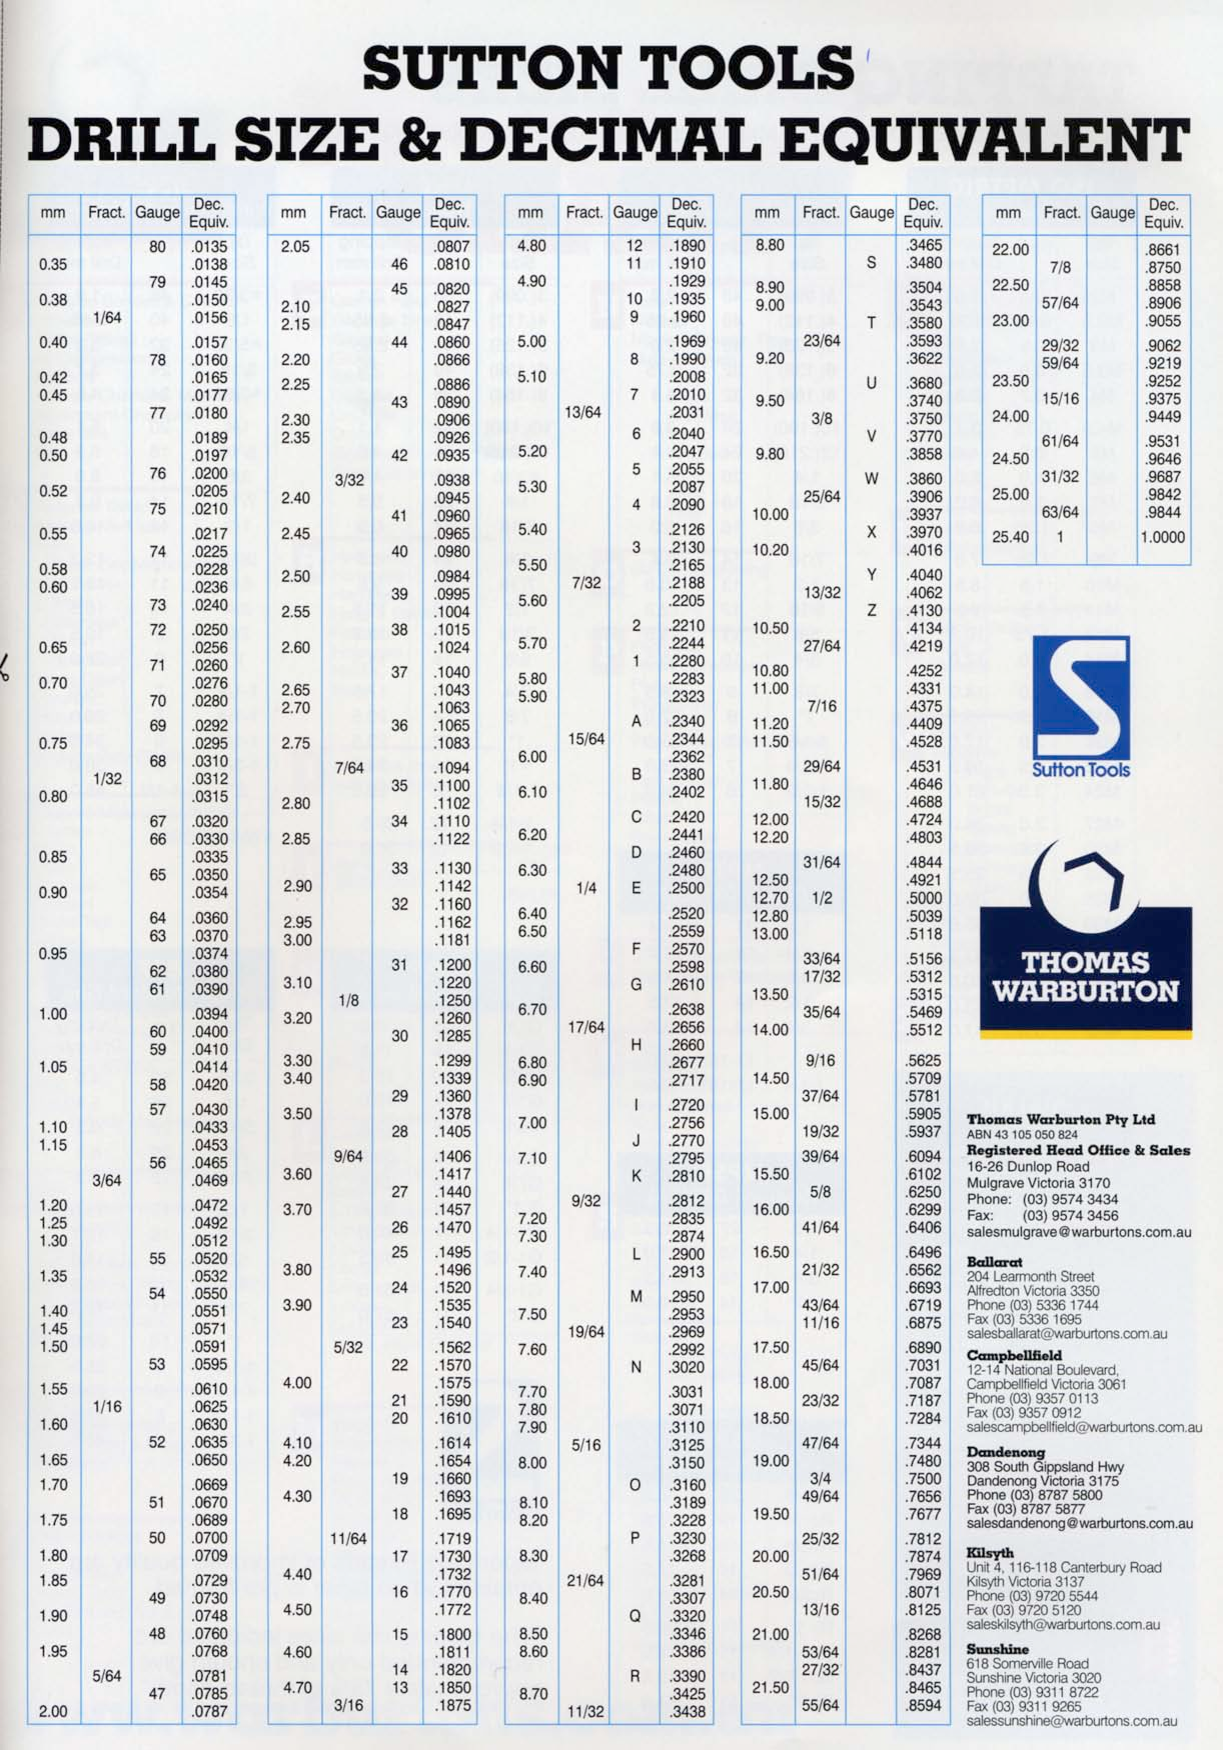 Sutton Tools Drill Size Decimal Equivalent Decimals Reference Chart Drill